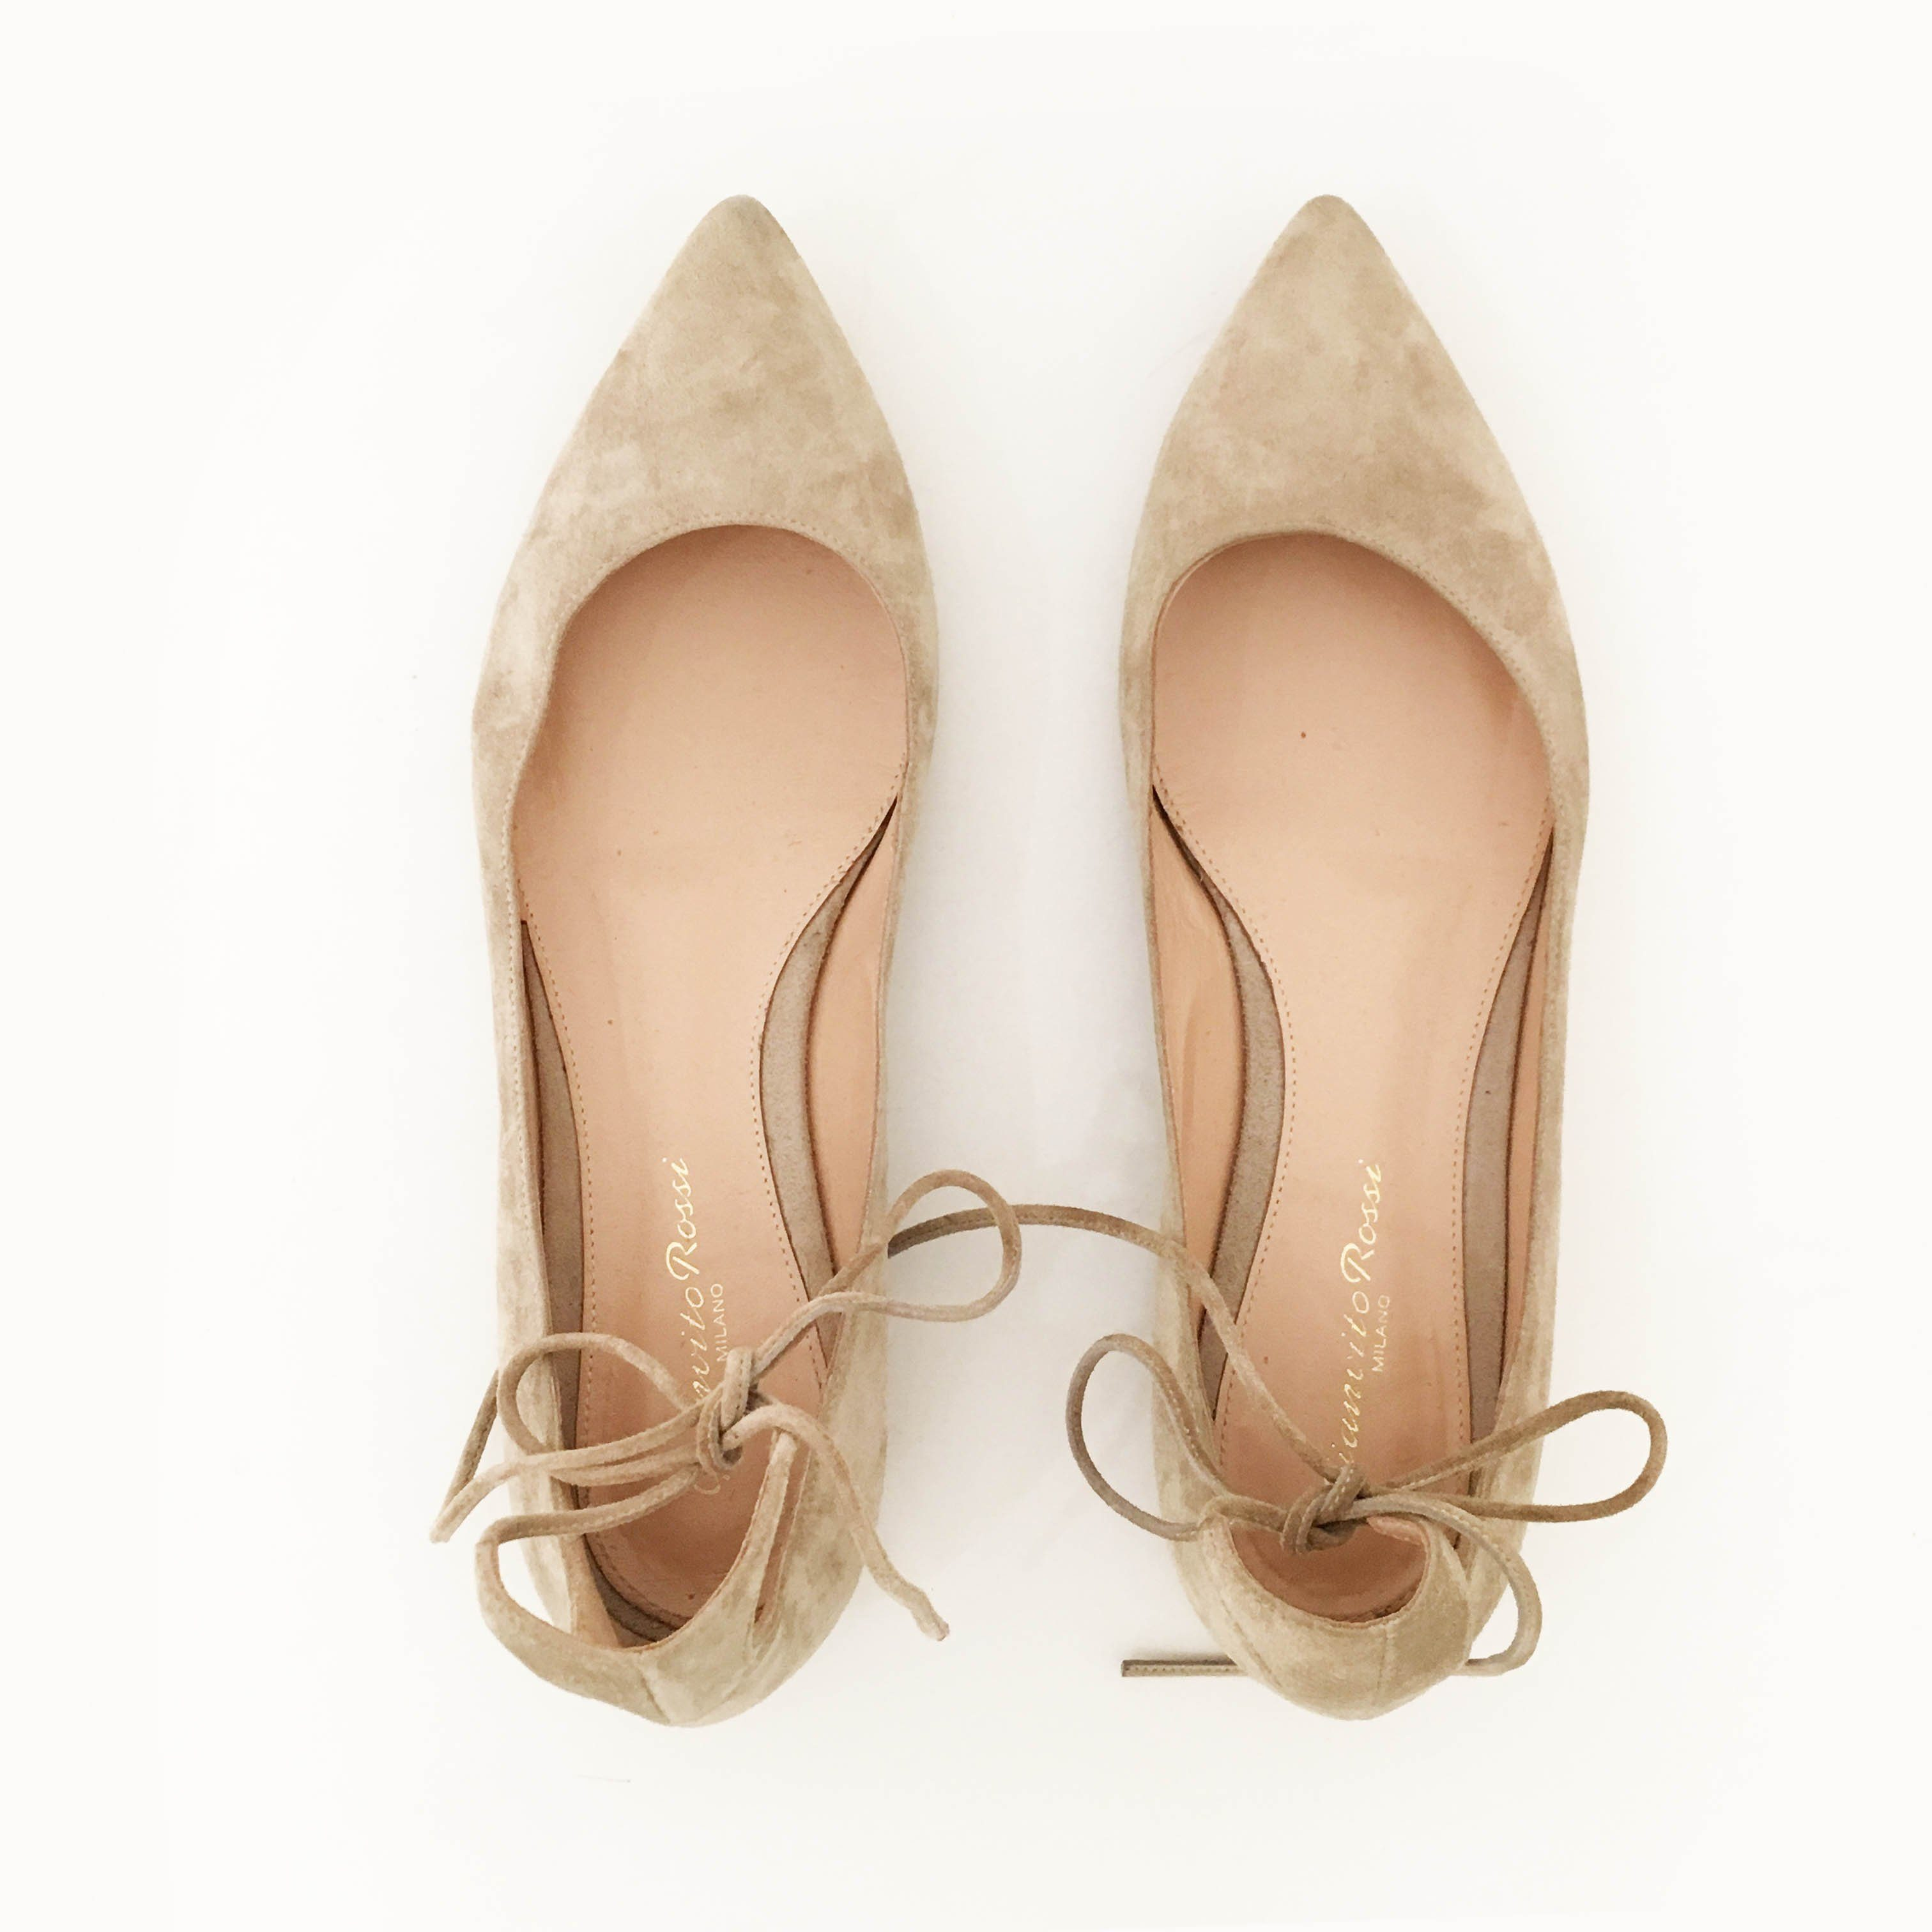 Gianvito Rossi Beige Suede Ankle Flats